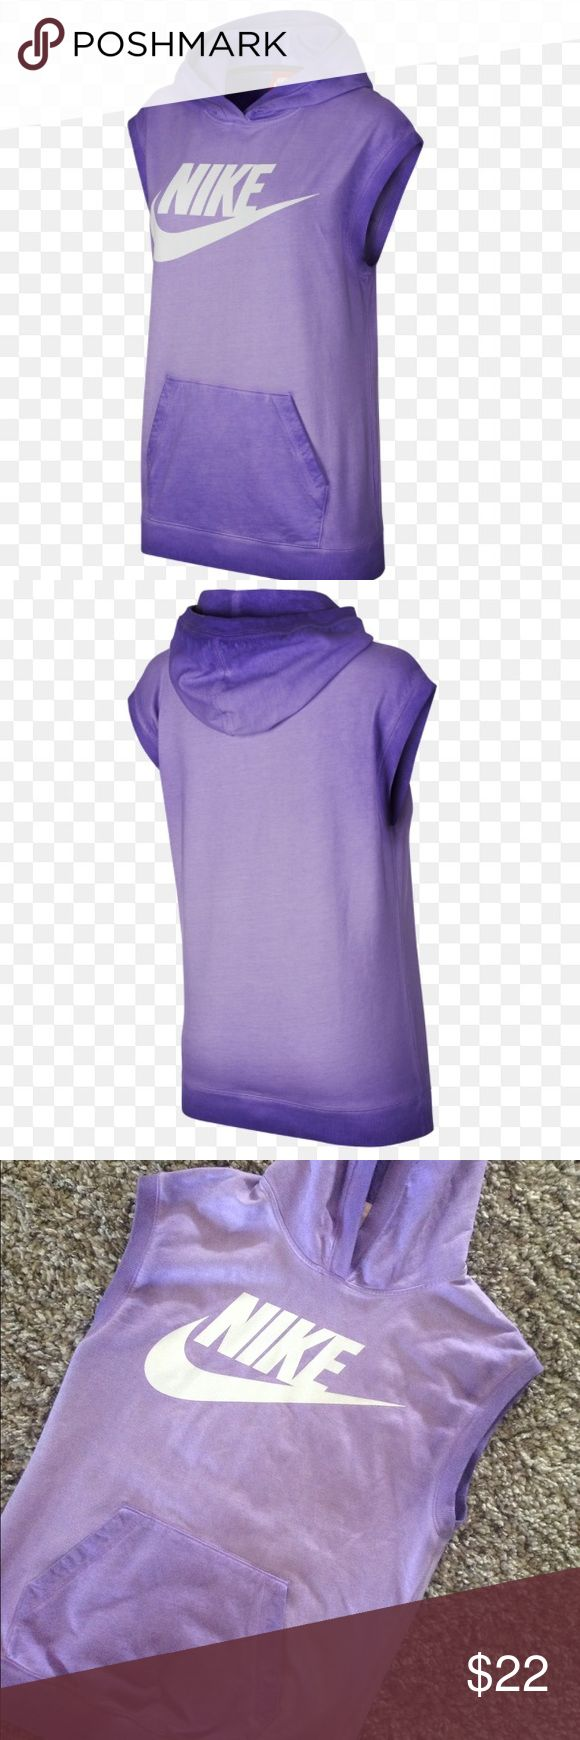 Nike Solstice sleeveless pullover hoodie purple Women's Nike Solstice sleeveless pullover hoodie in purple. Size Small. NWOT. So cute! Perfect, like new condition-never worn. Last picture for size/fit reference only (this item is PURPLE). Nike Tops Sweatshirts & Hoodies